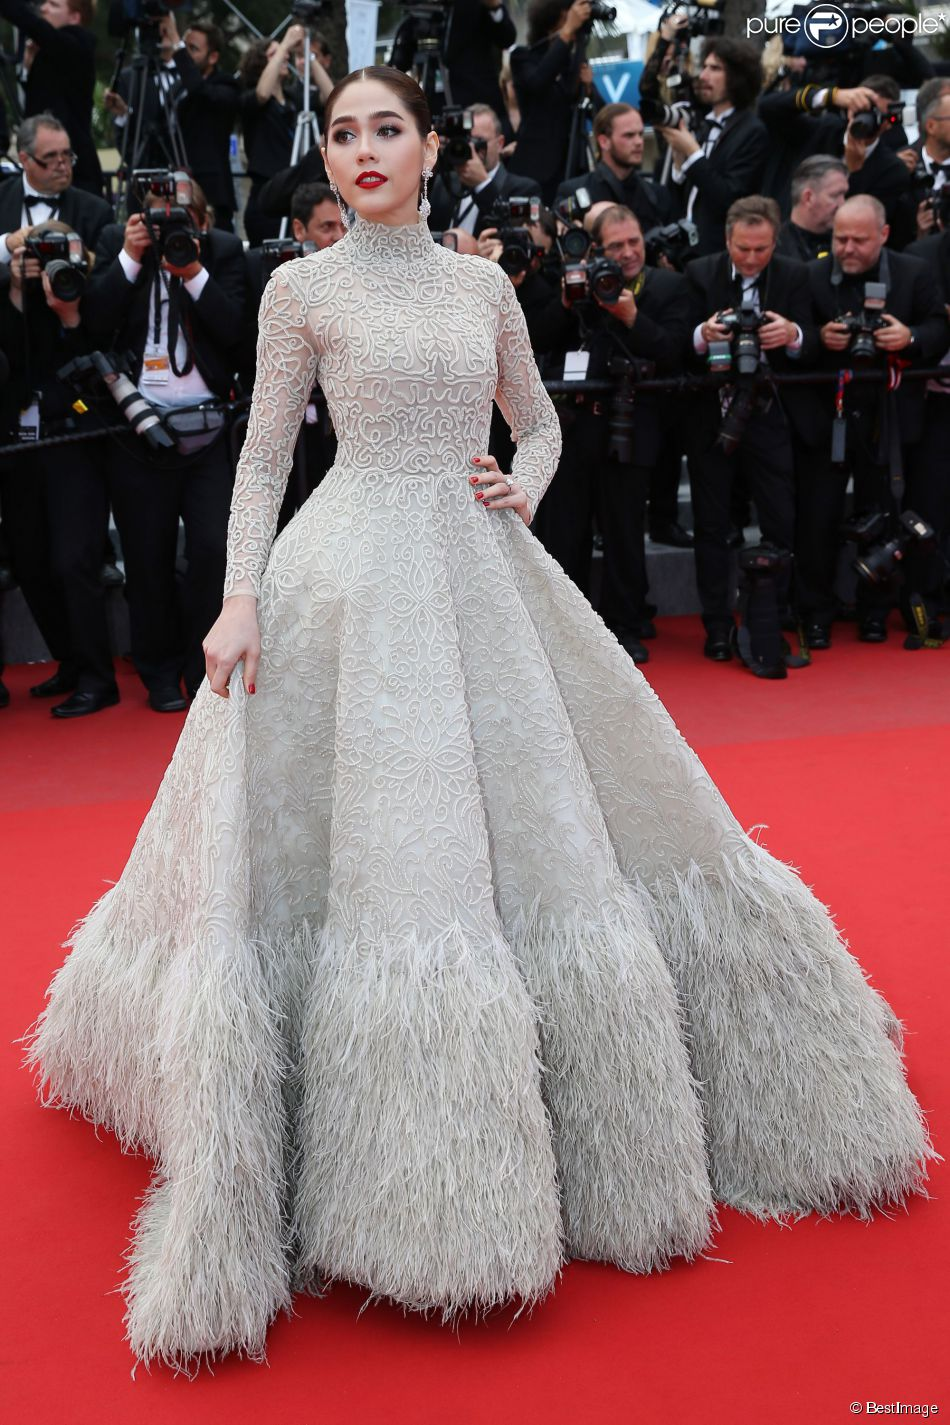 Best Looks From Day 6 At The Cannes Film Festival 2015